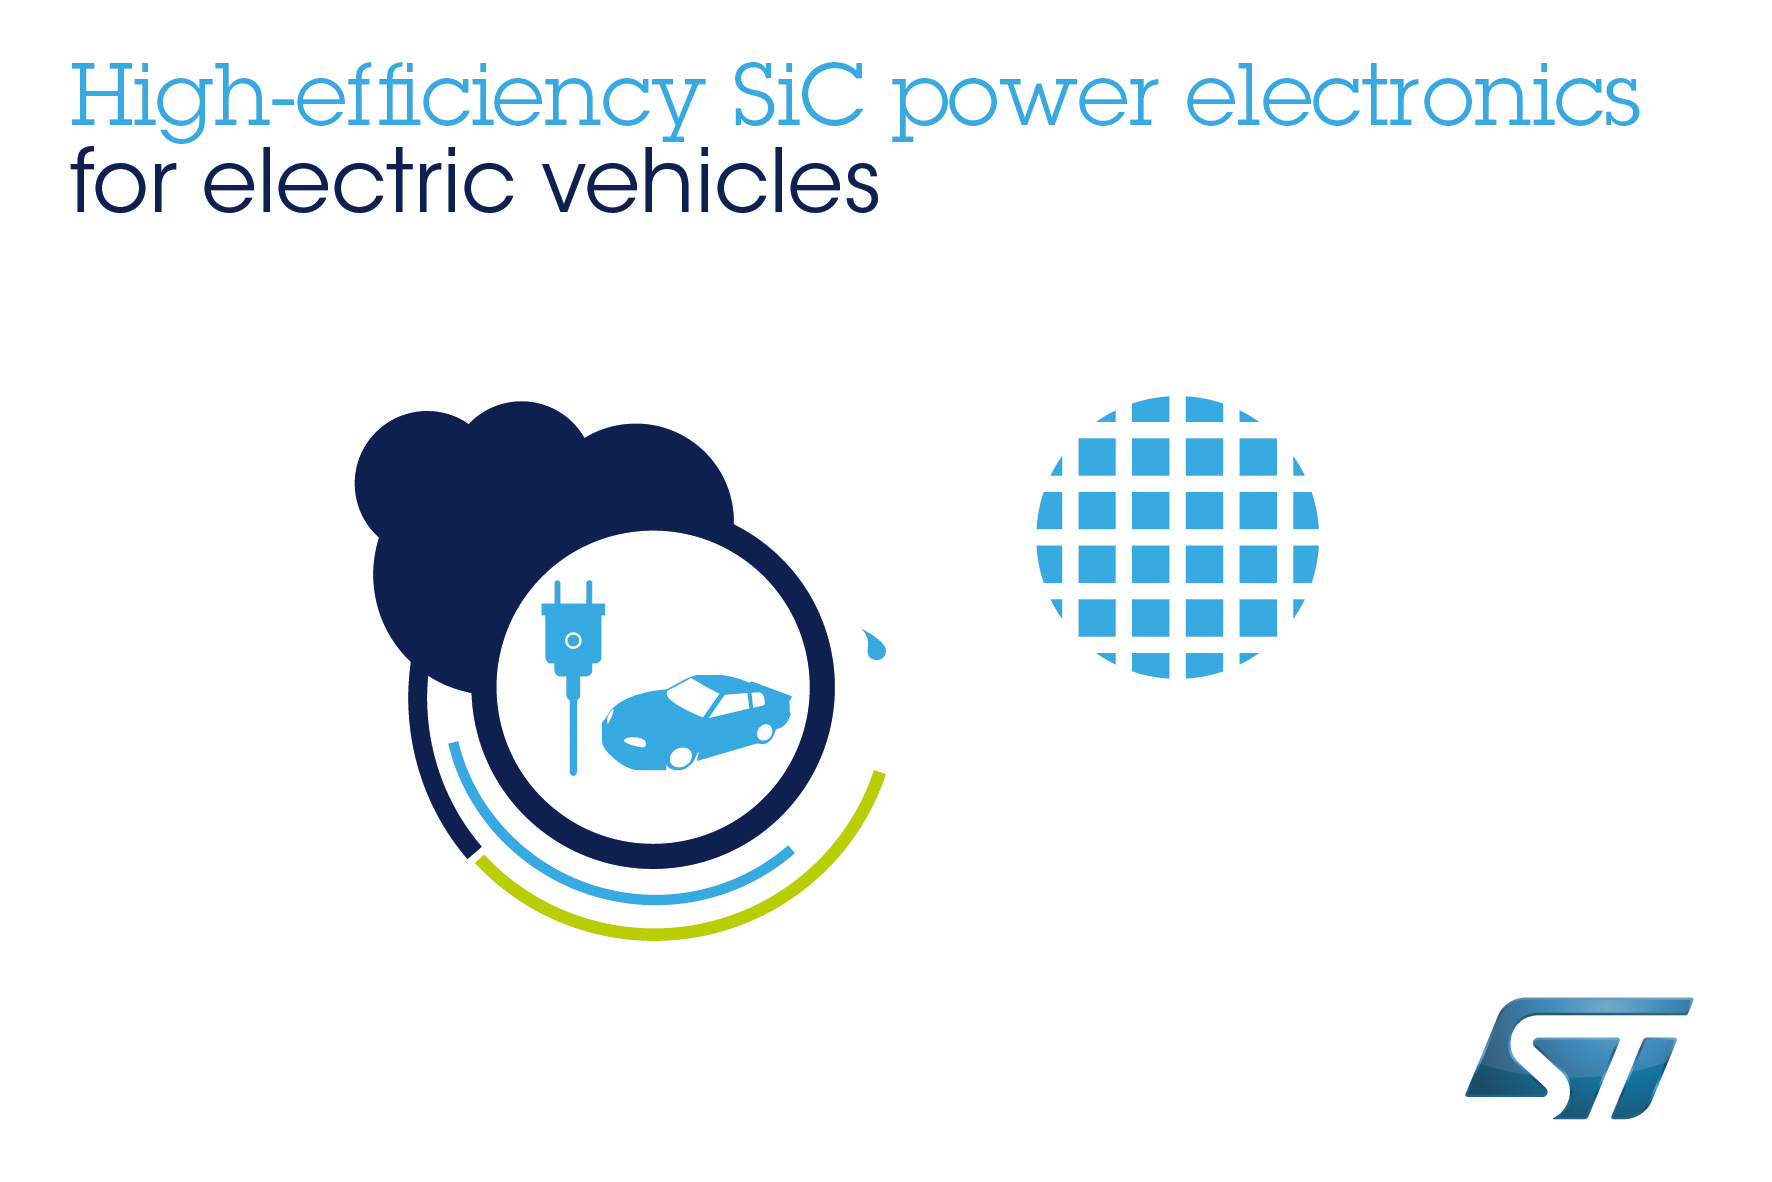 Stmicroelectronics To Supply Advanced Silicon Carbide Power Electronics To Renault Nissan Mitsubishi For High Speed Battery Charging In Next Generation Electric Vehicles